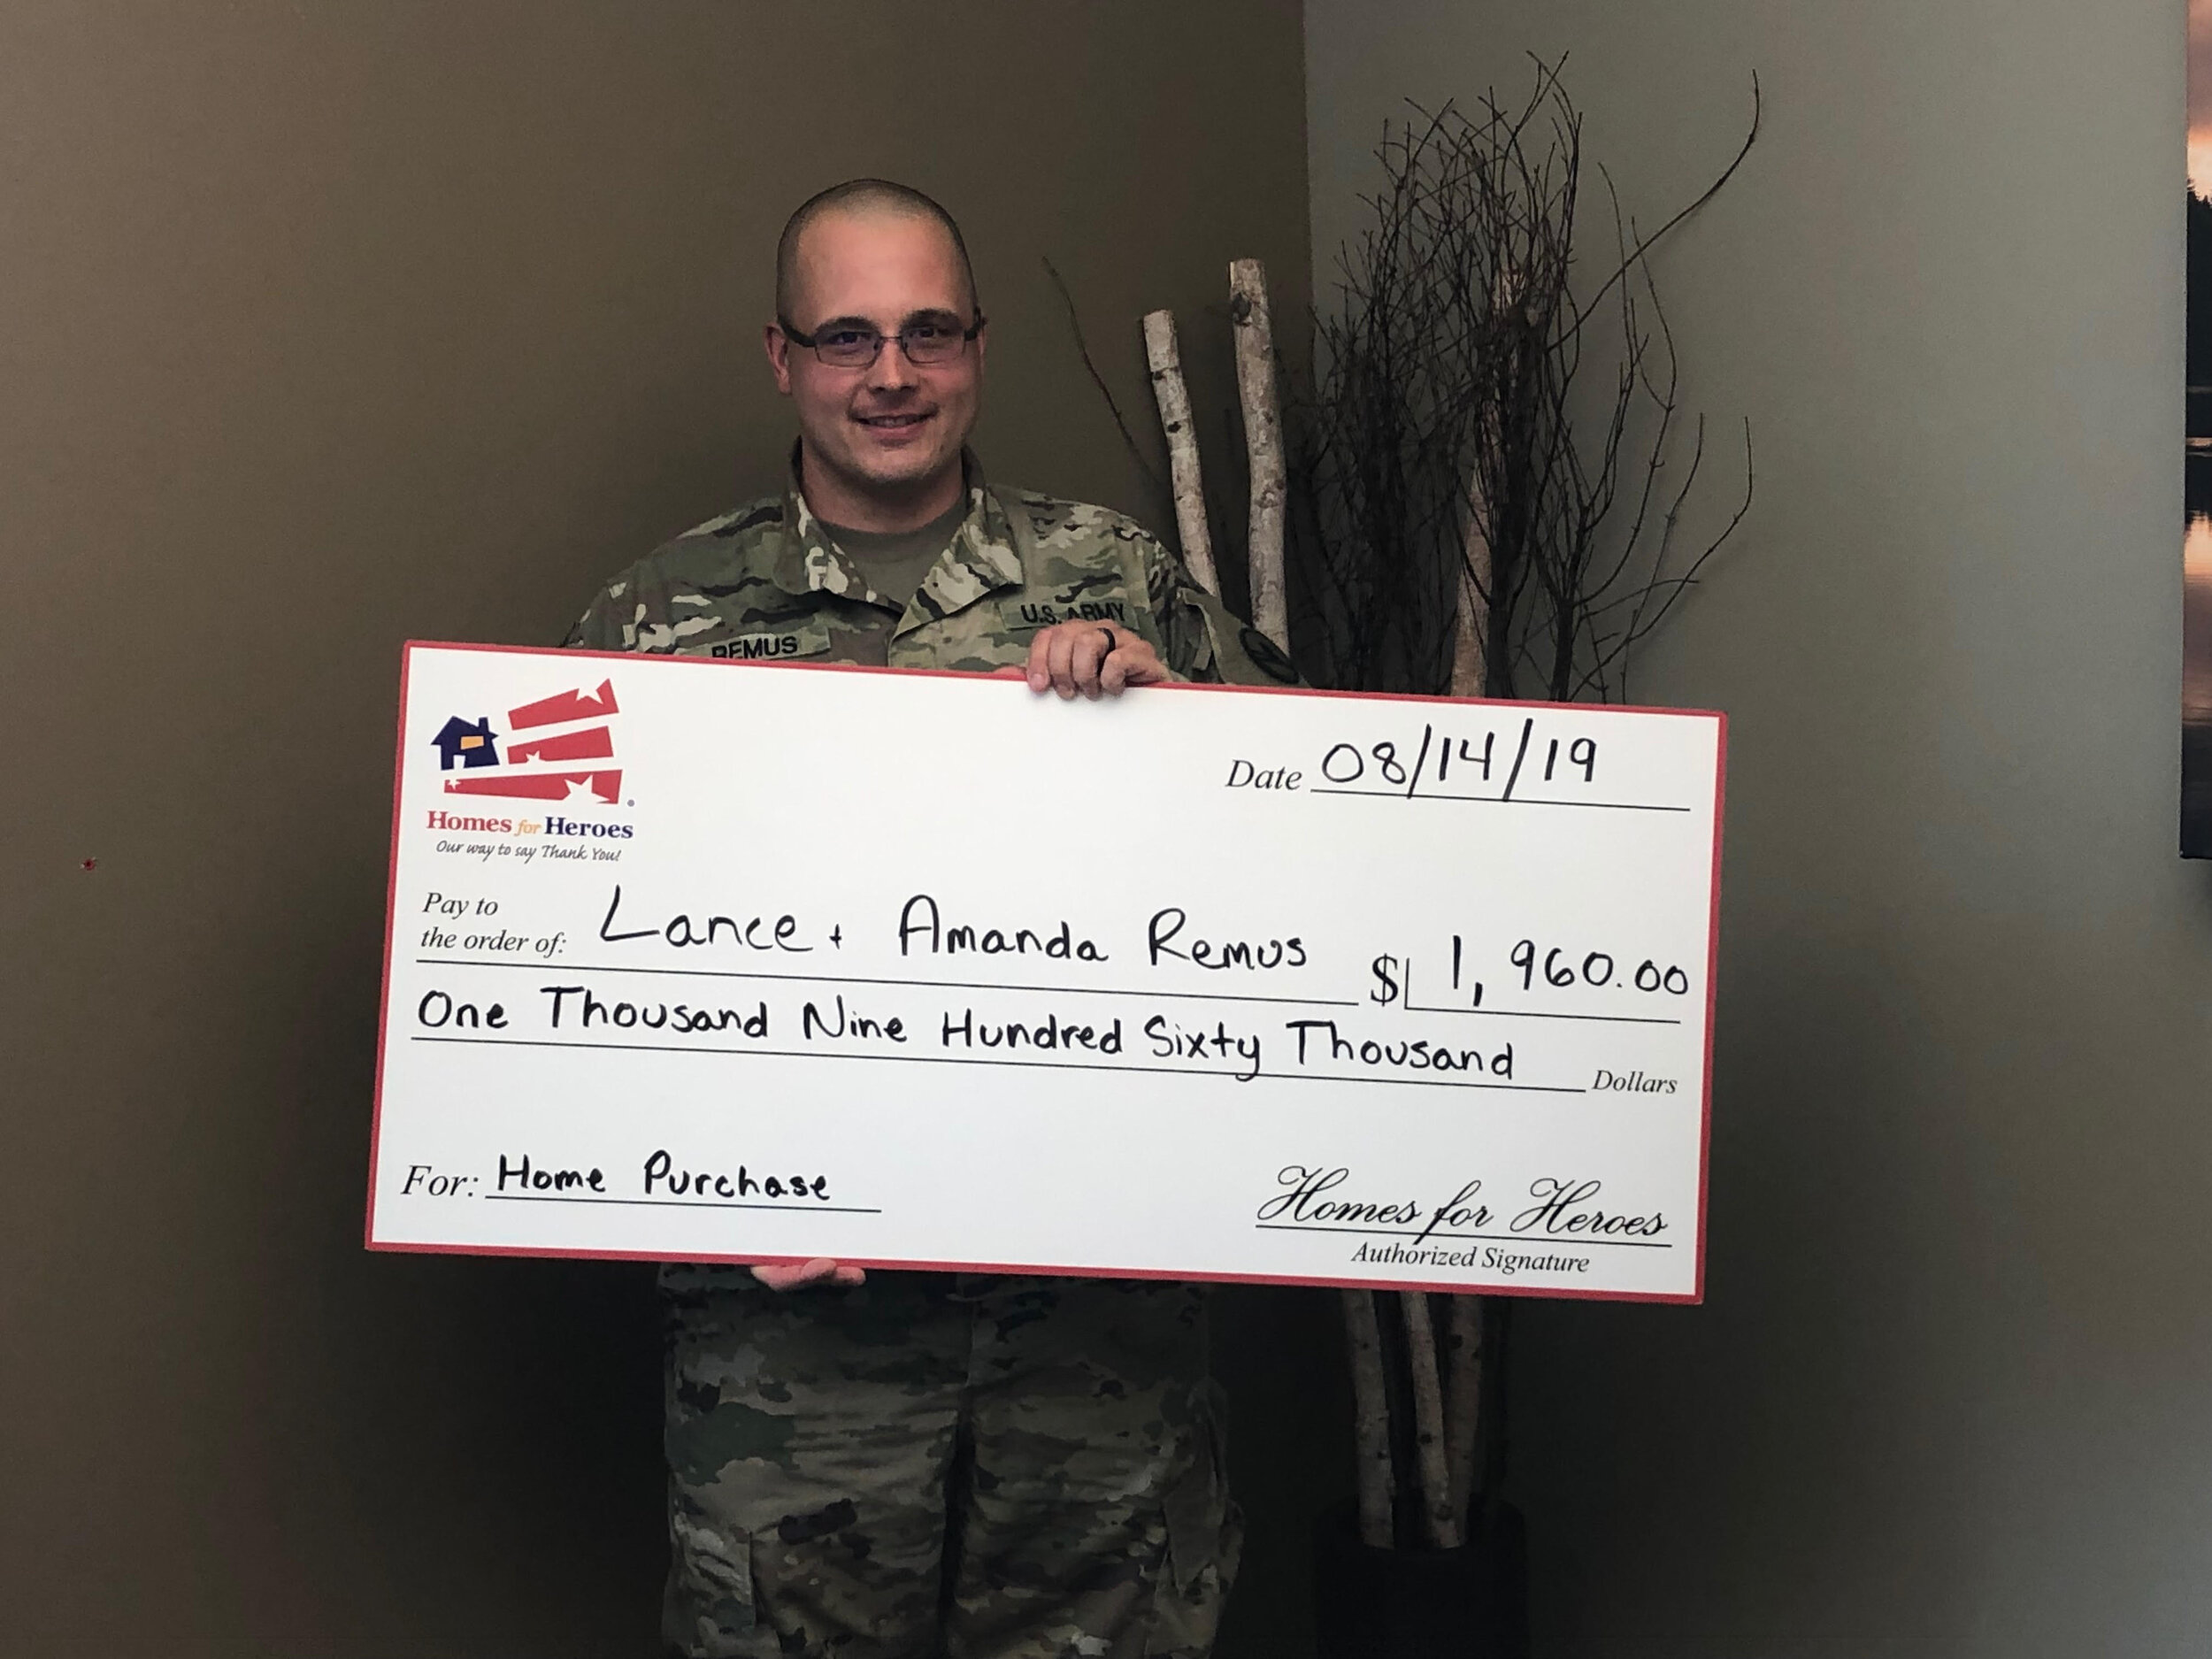 Heroes deserve rewards - It's important to me to serve others who have served our country. VA Loans are a great way for veterans to save money, and I have years of experience working with active duty and retired military members. In effort to extend savings to other types of public servants such as Police, Fire, EMTs, Healthcare Professionals, and Teachers, I offer a program called Homes for Heroes that allows me to offer you a rebate at closing! Lance saved $1,960 using Homes for Heroes to purchase his home!